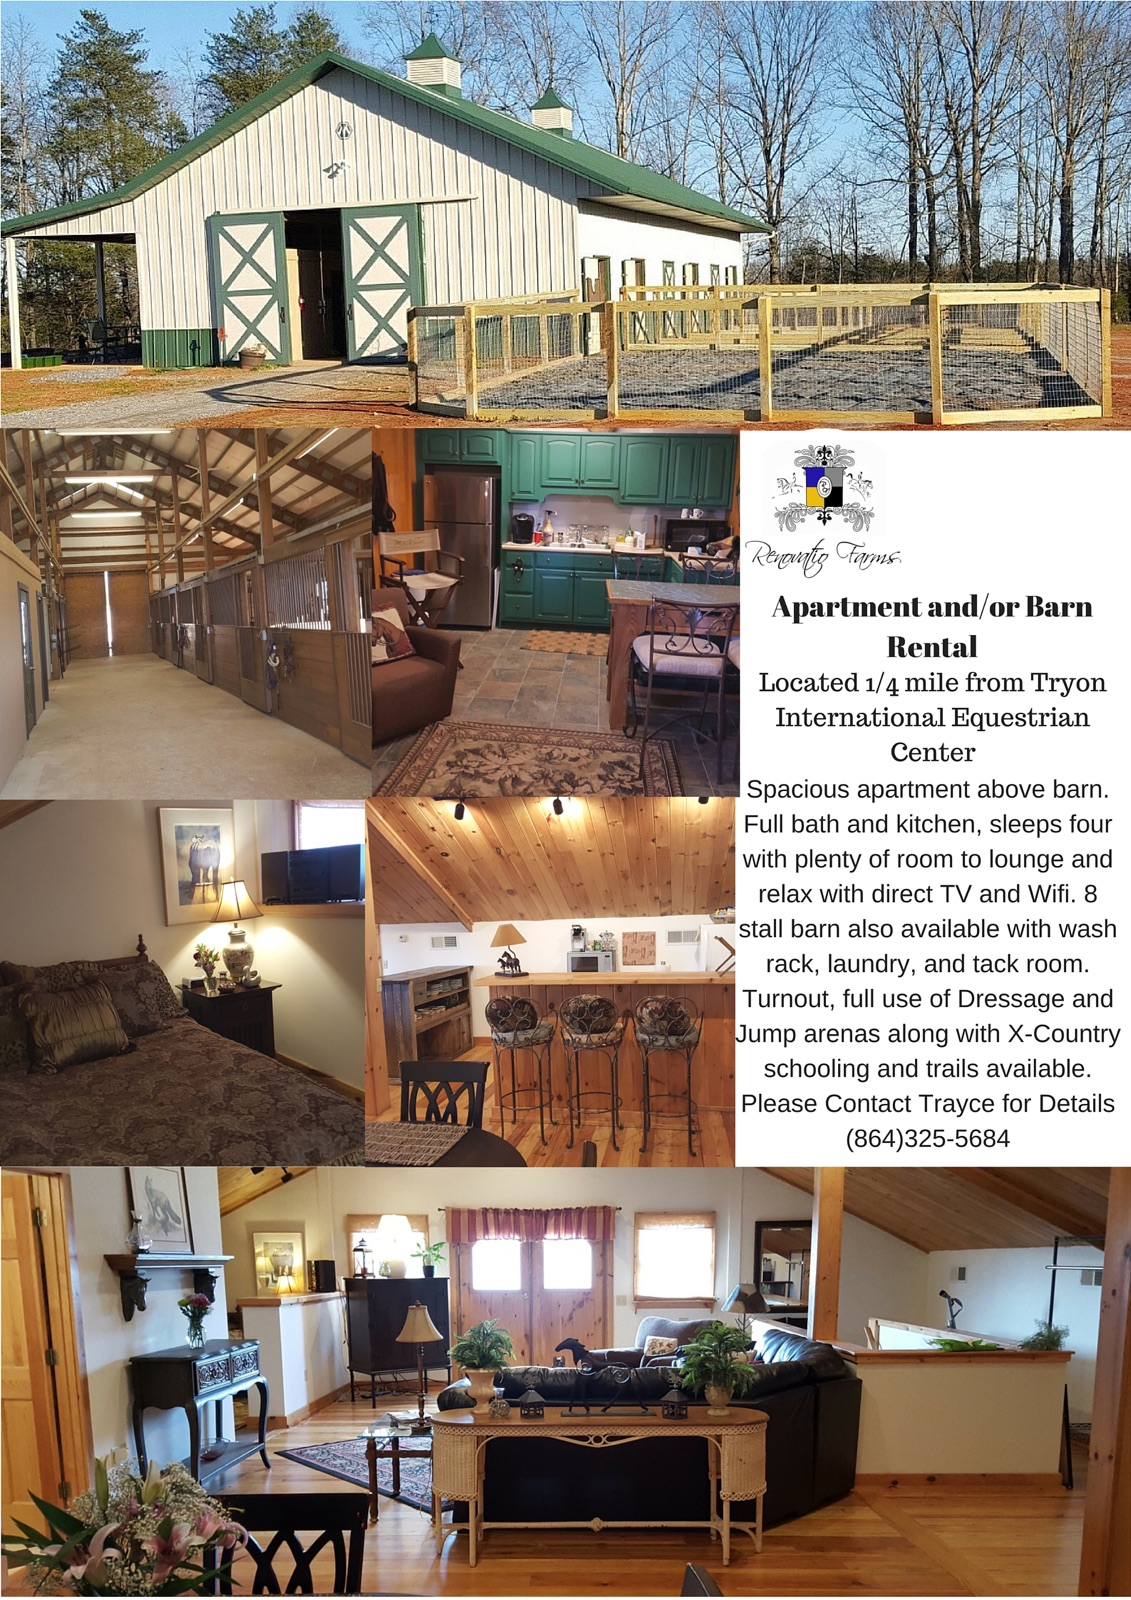 Apartment/Barn Rental — Renovatio Farm | Equestrian | Horse ...